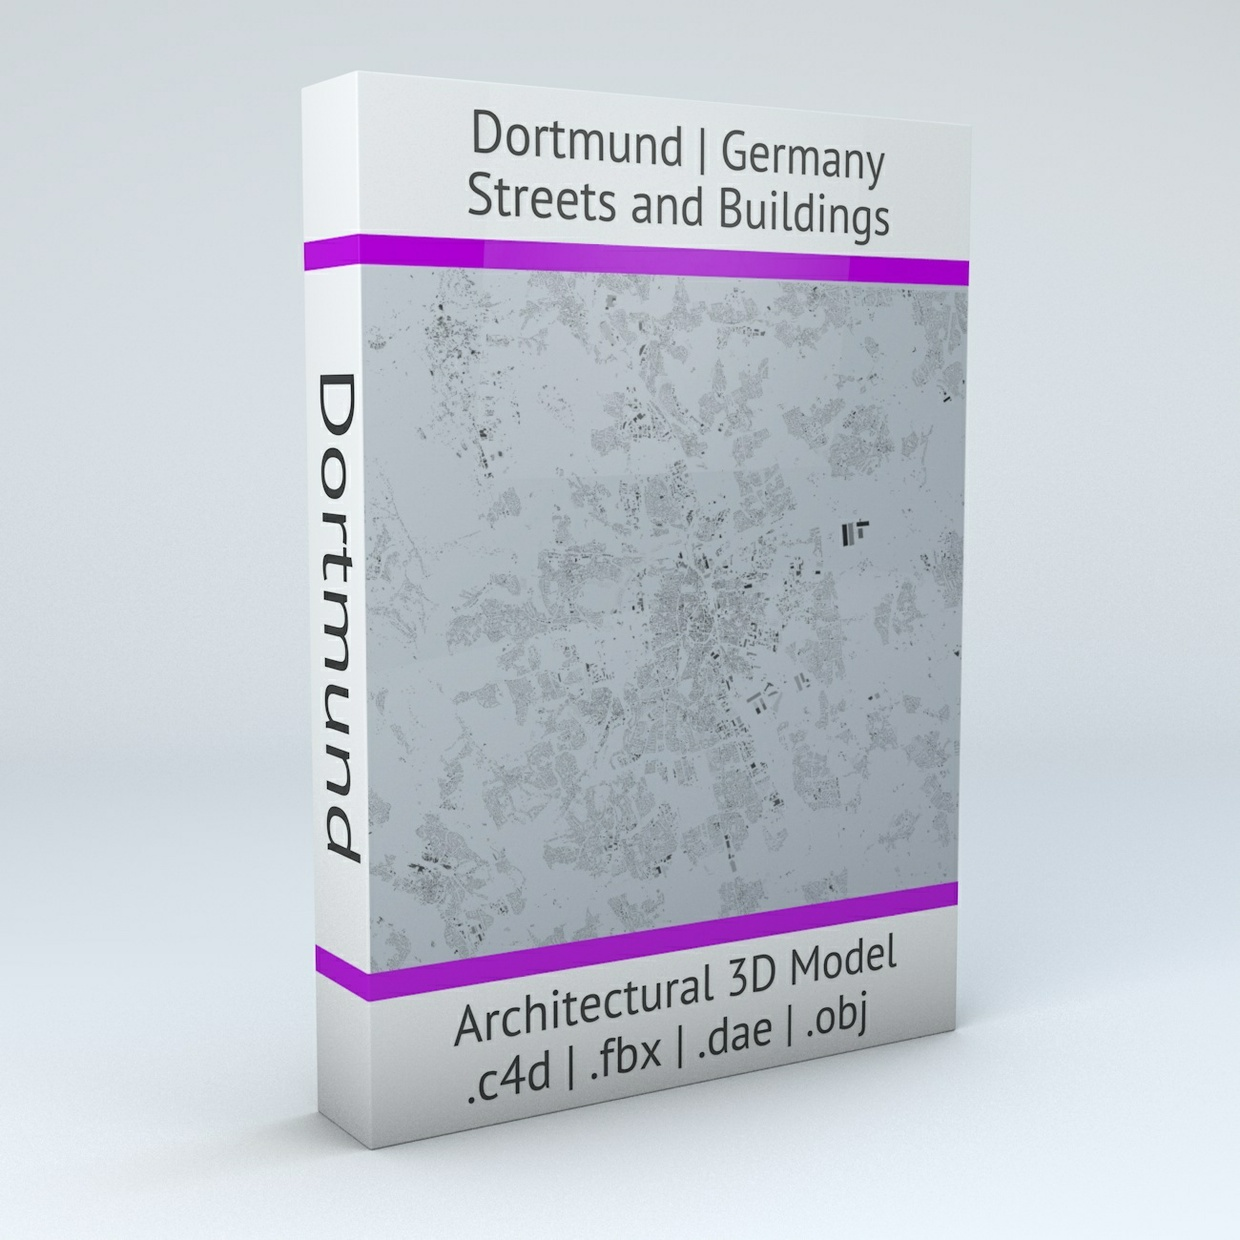 Dortmund Streets and Buildings Architectural 3D Model